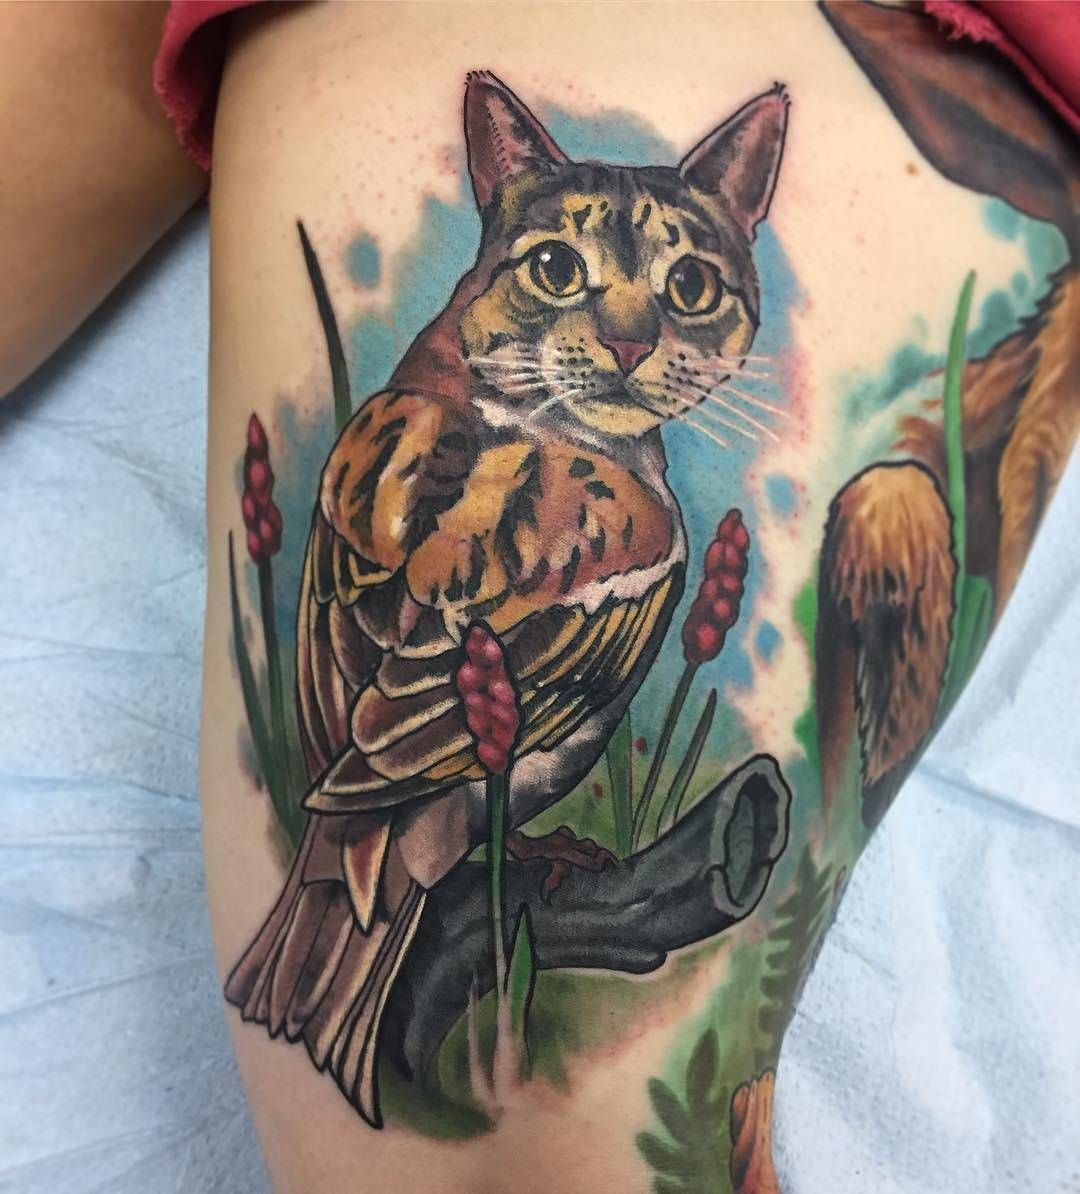 Cat Owl By Evanlovett At Philadelphia Tattoo Collective In